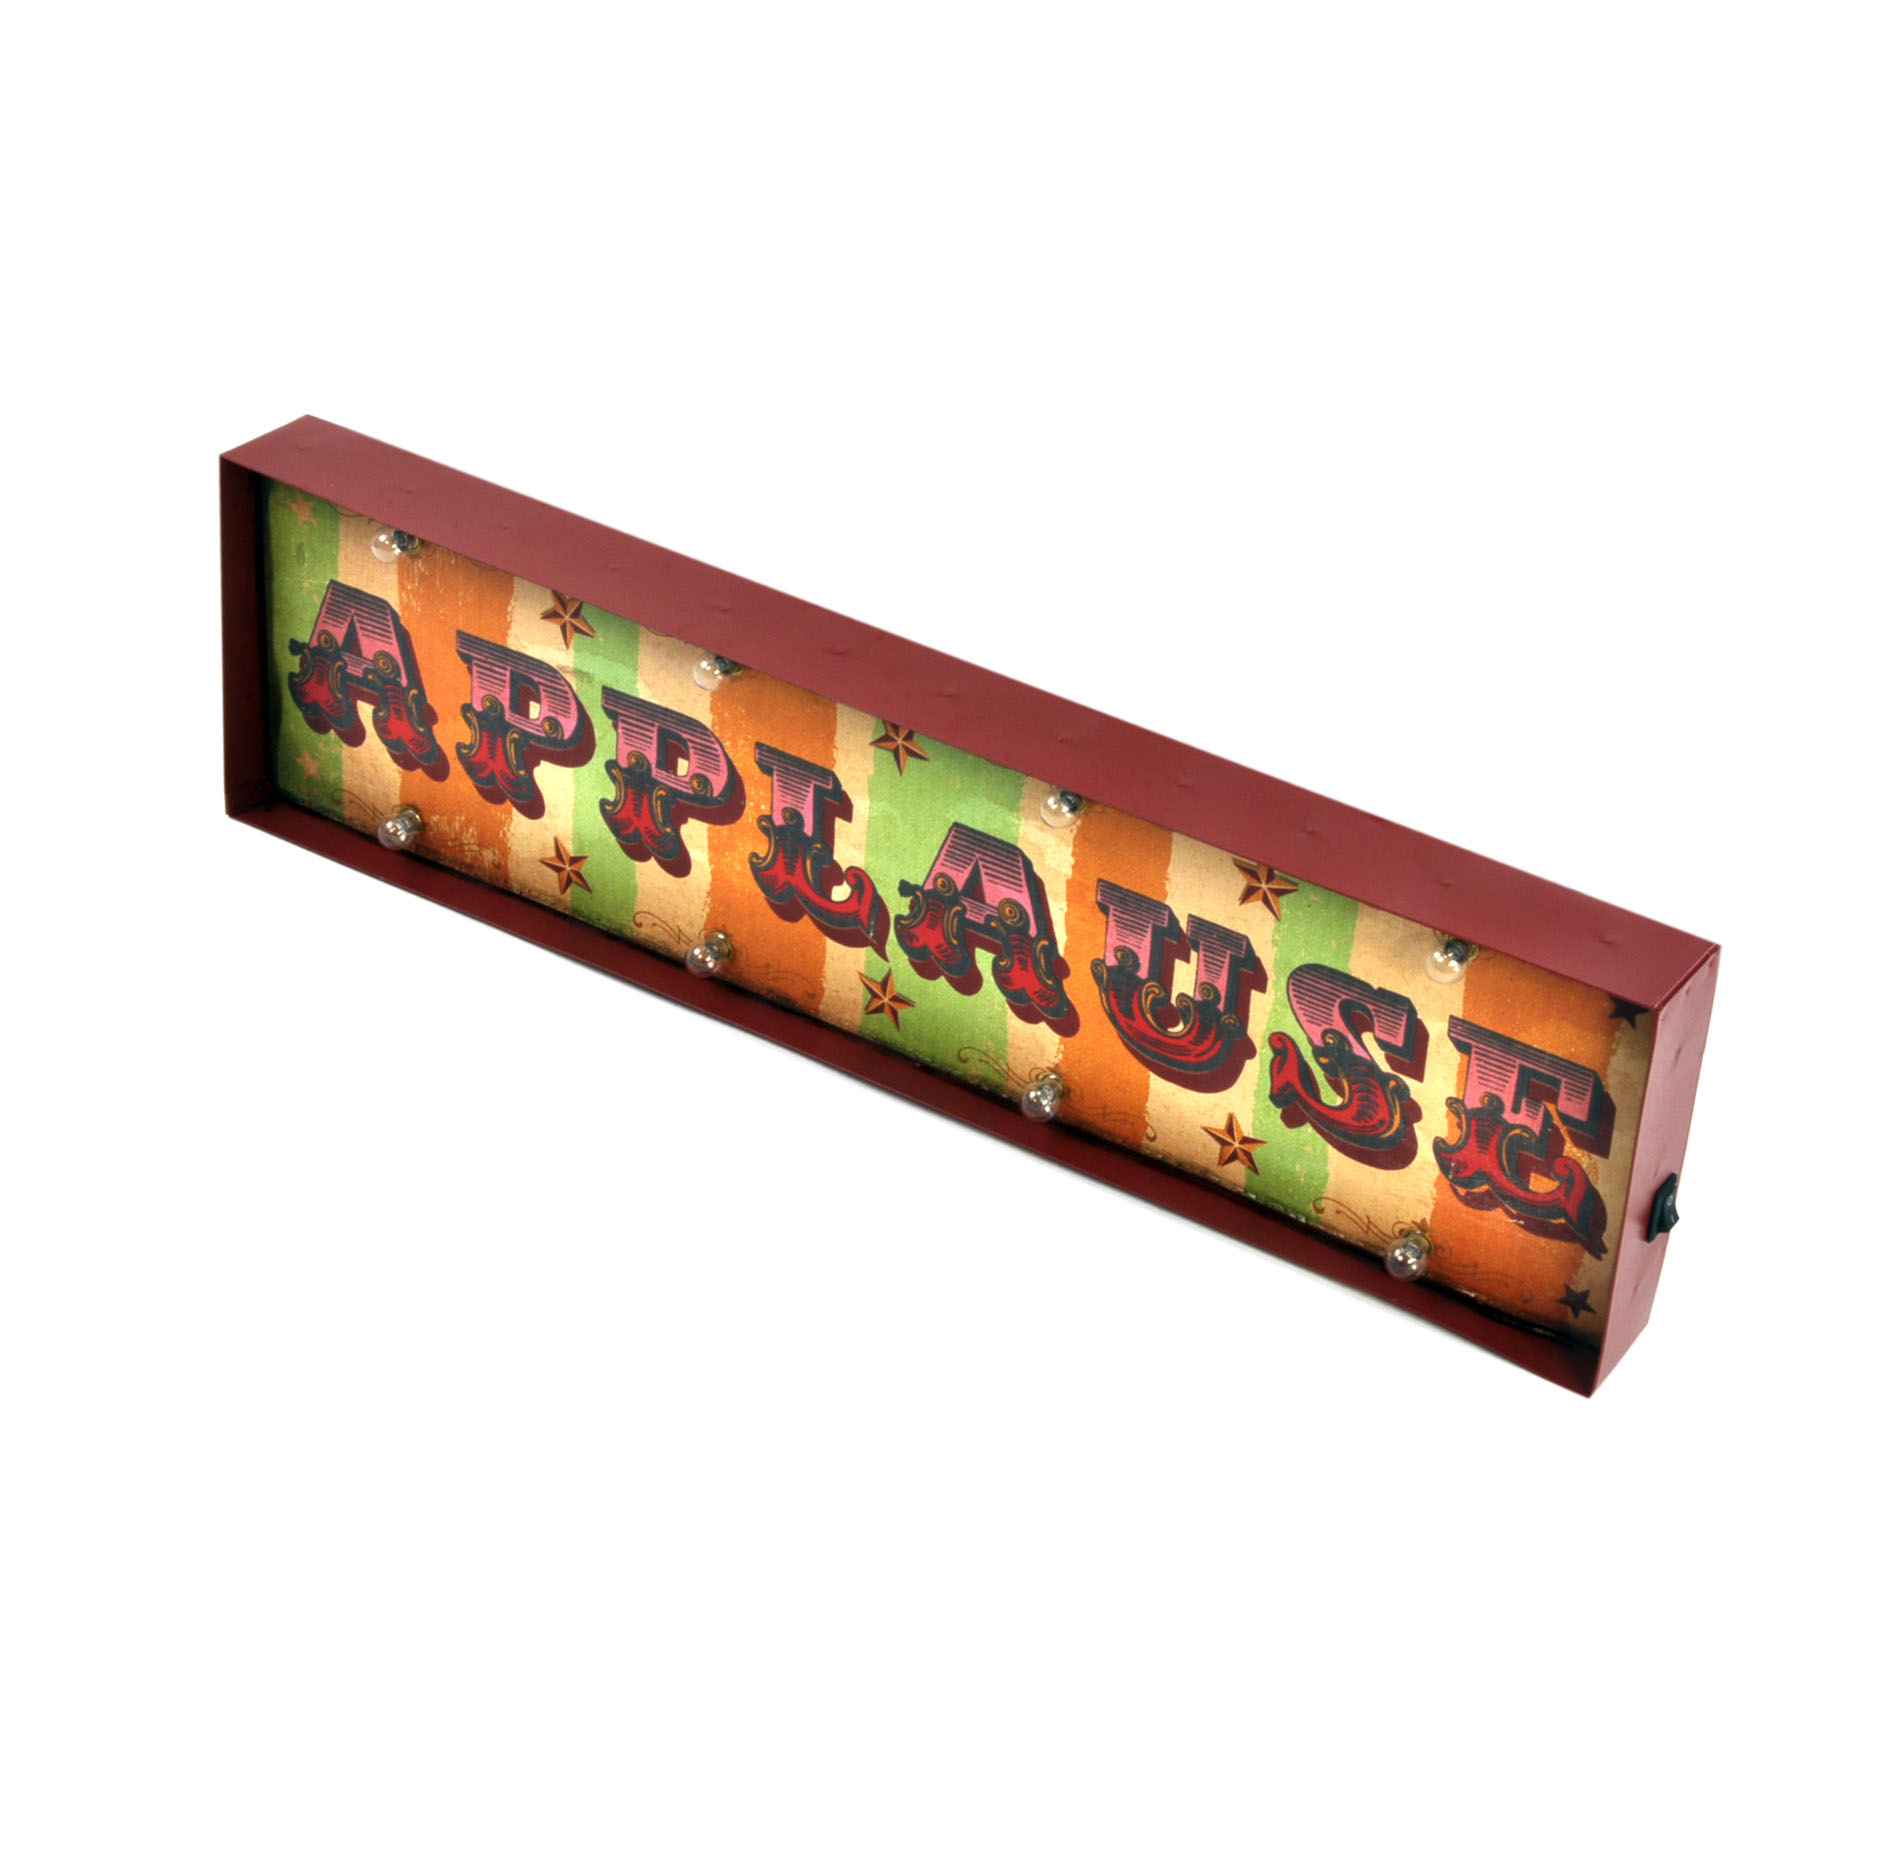 Carnival Toy Box Pink: Carnival Applause Box Light